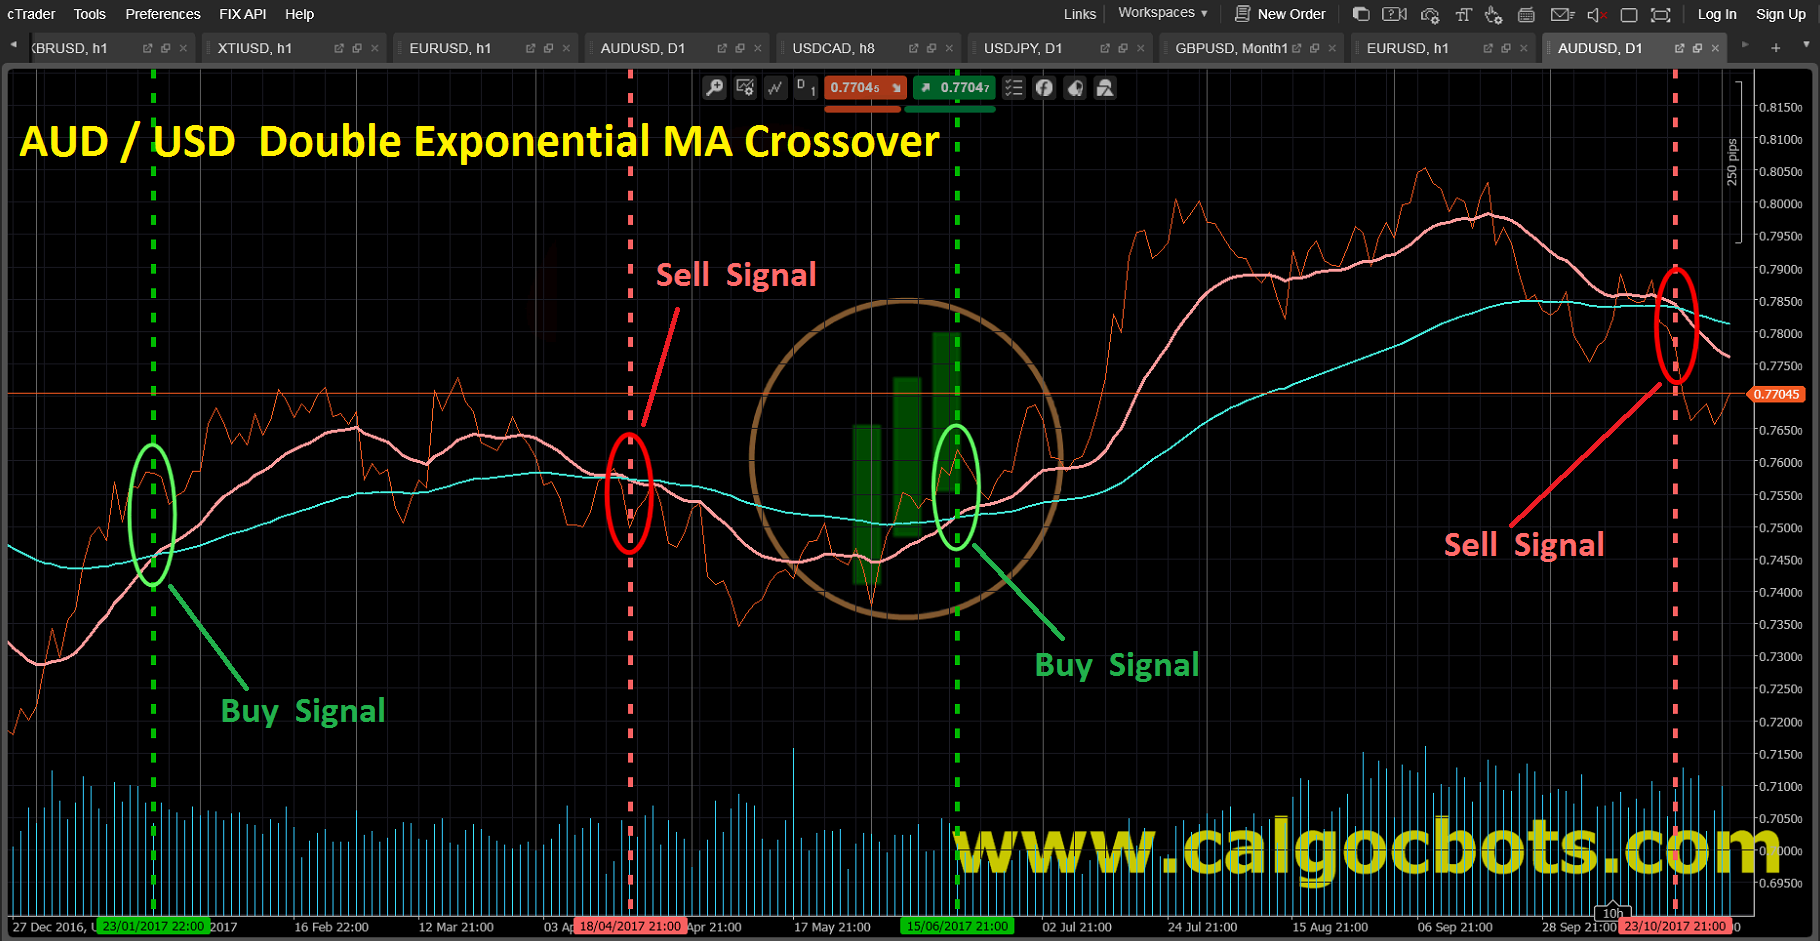 Double Exponential MA crossover_AUD_USD_Line_chart_cAlgo_cBots_cTrader_01